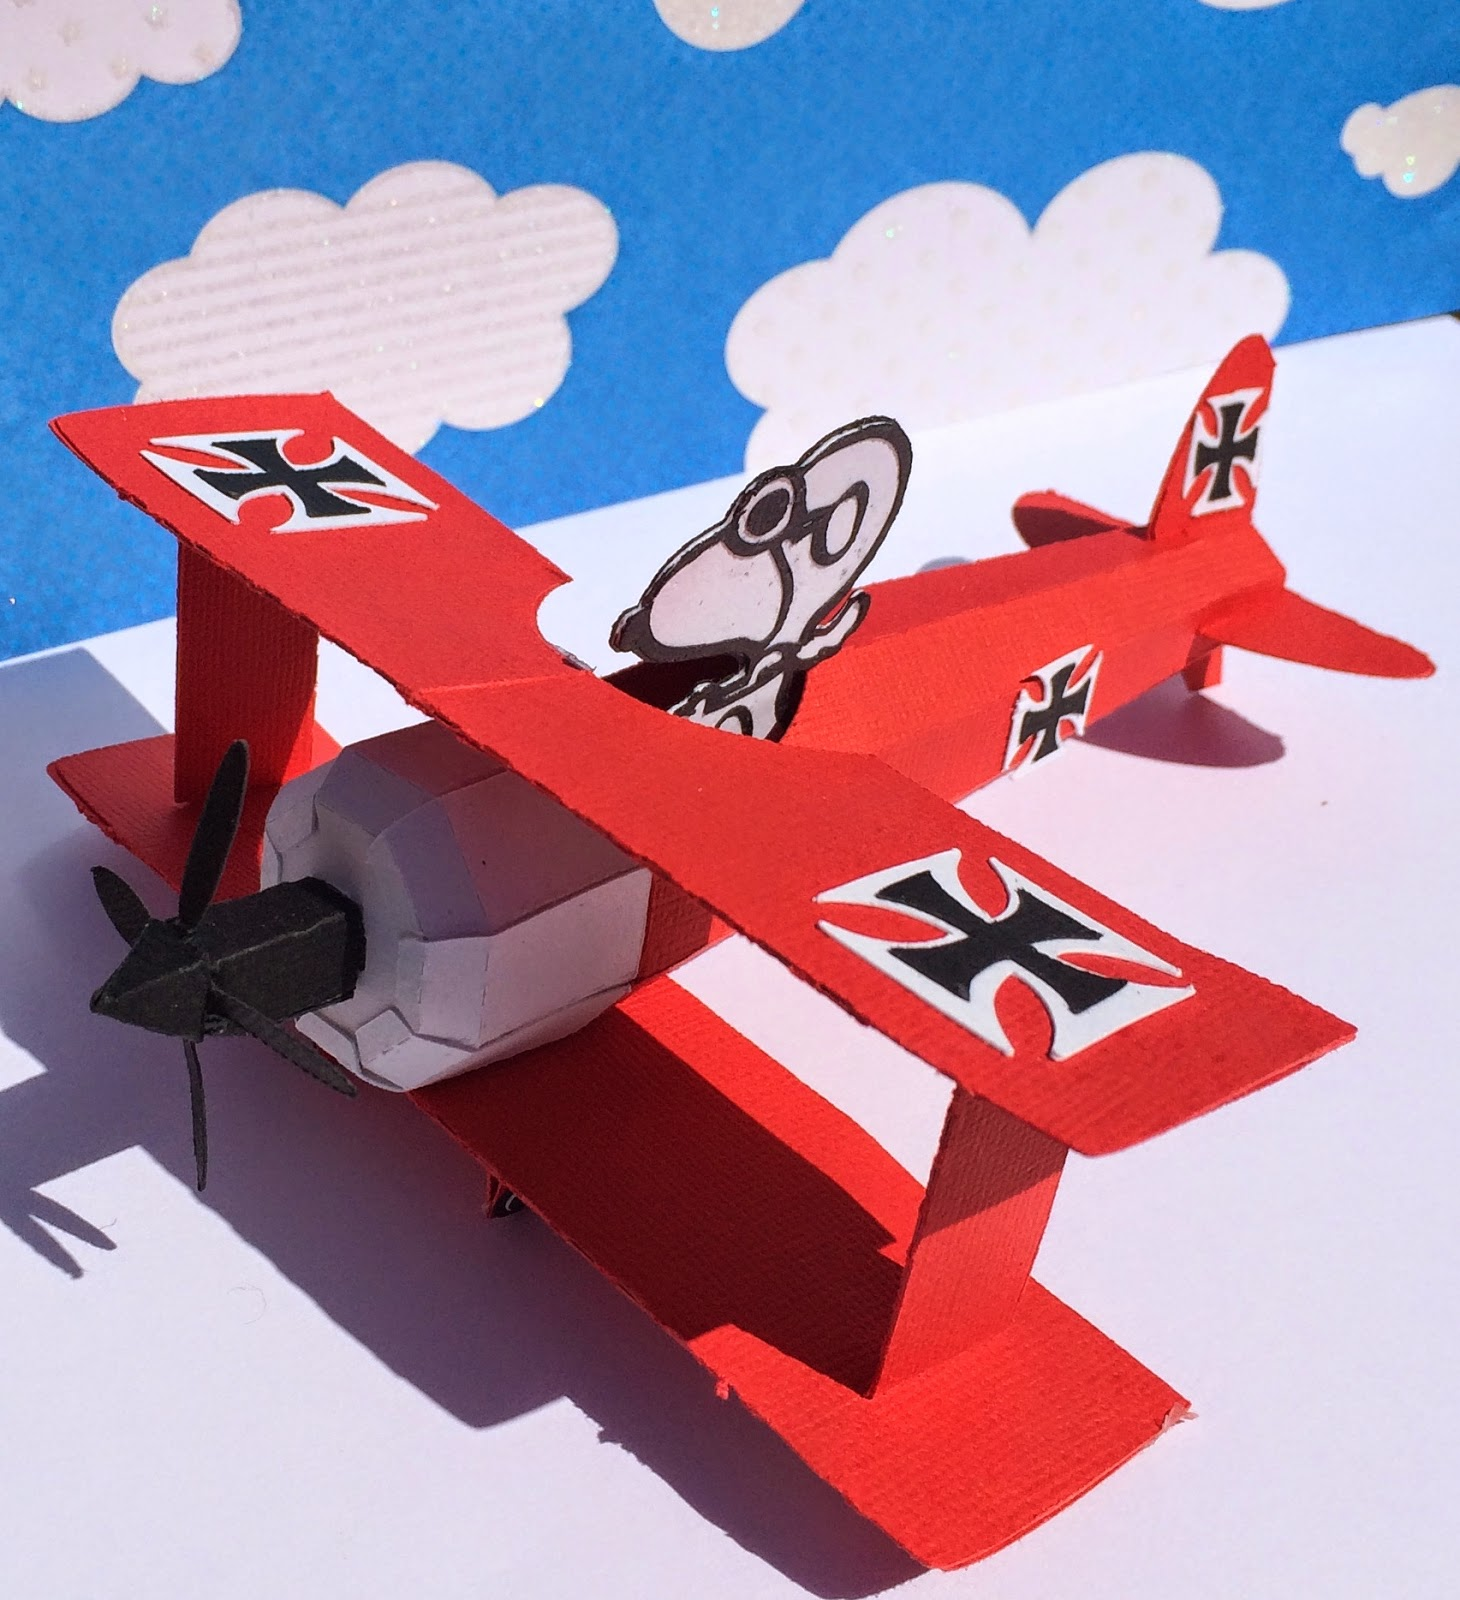 snoopy red baron plane images galleries with a bite. Black Bedroom Furniture Sets. Home Design Ideas